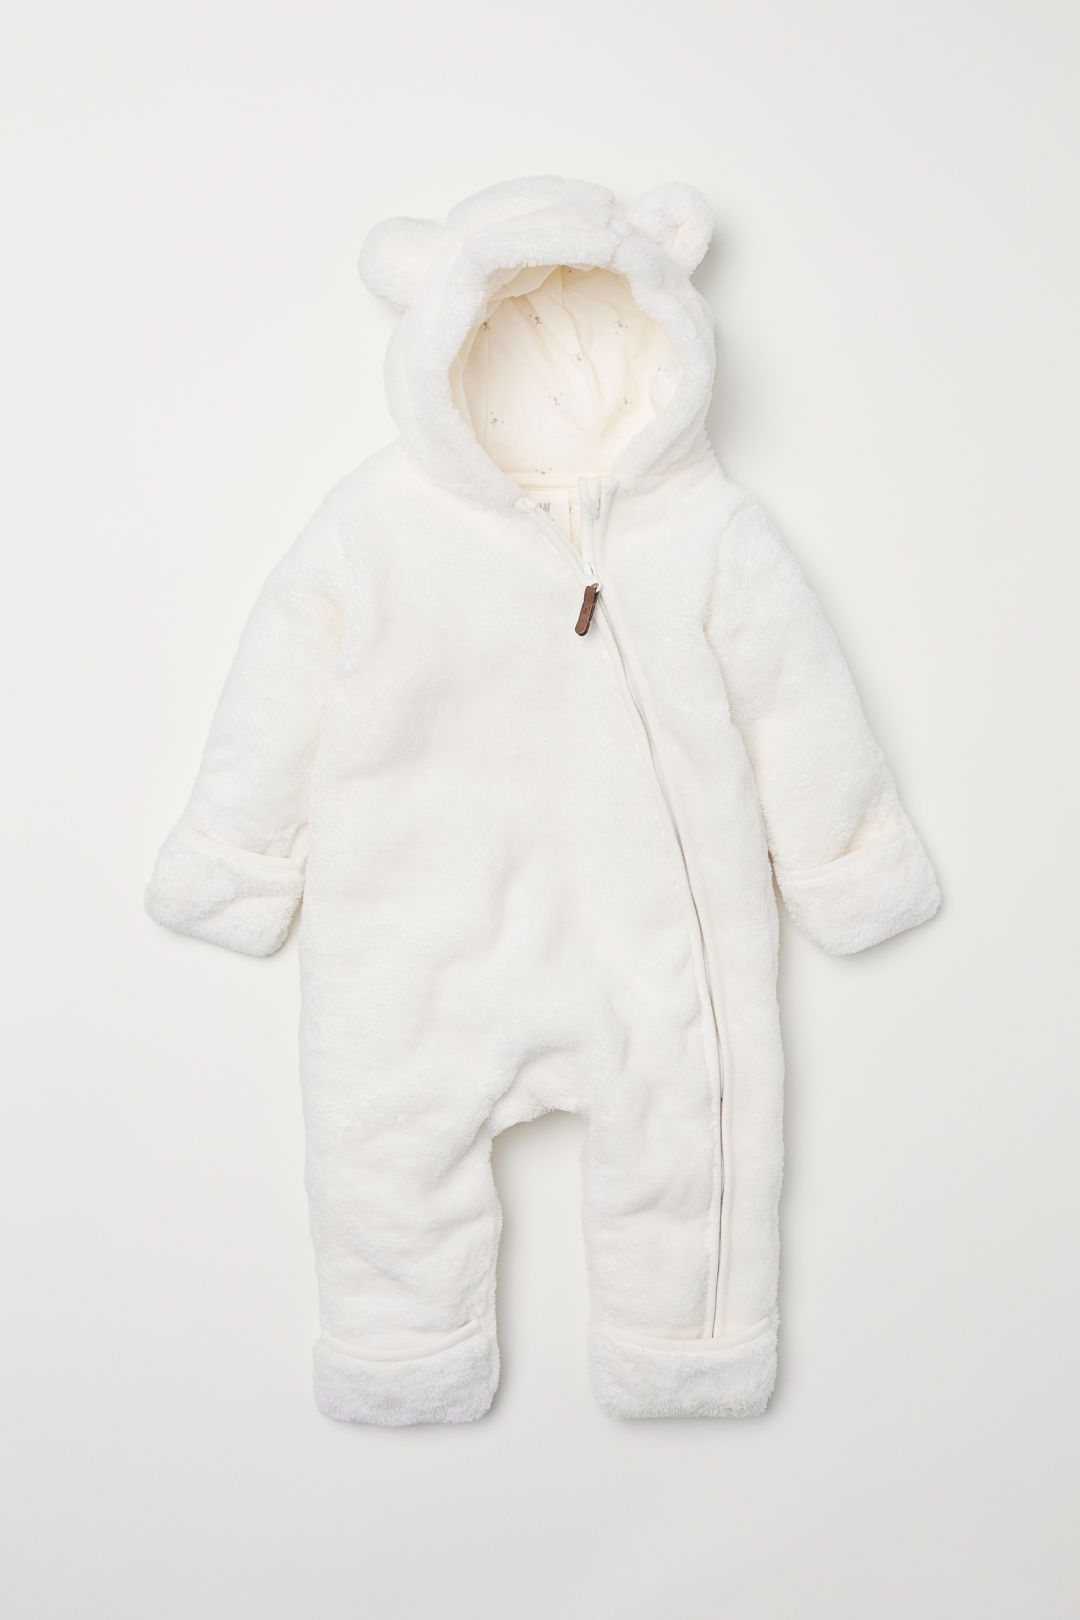 e0dfeecfdc584 ... clothes for ages 0 to 9 months at. Top Old Fashioned Boy Names. Pile  Overall - Natural white - Kids